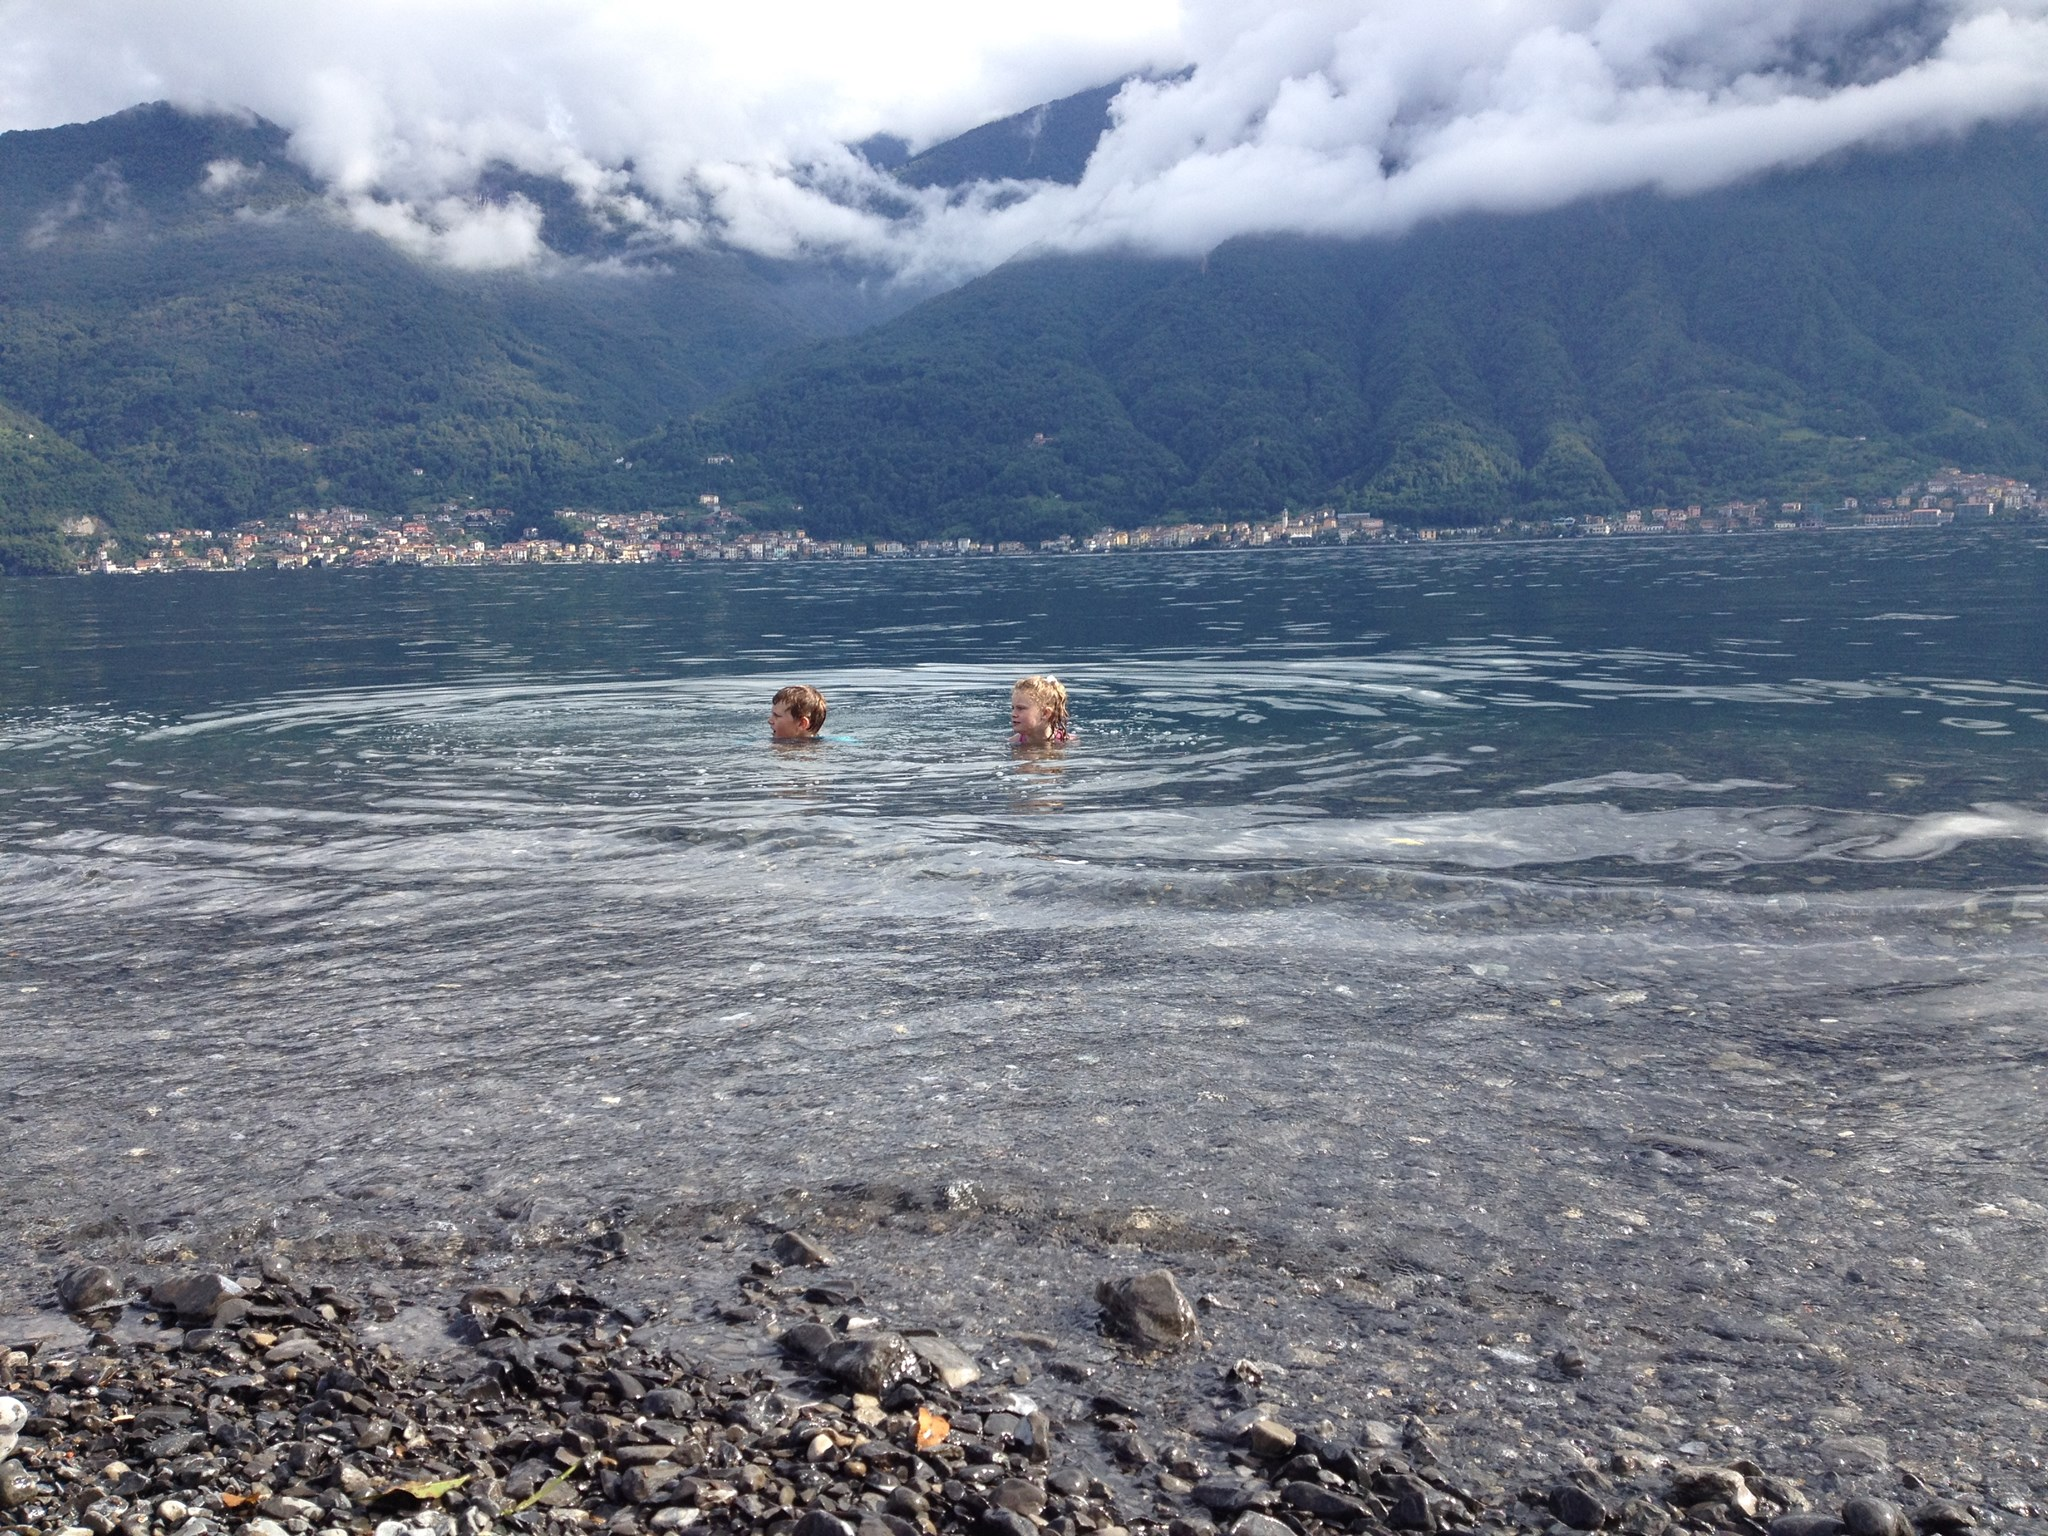 Swimming in Lake Como - Nr Lenno - August 2014.  Harry & Jess.  Happy (cold) time!